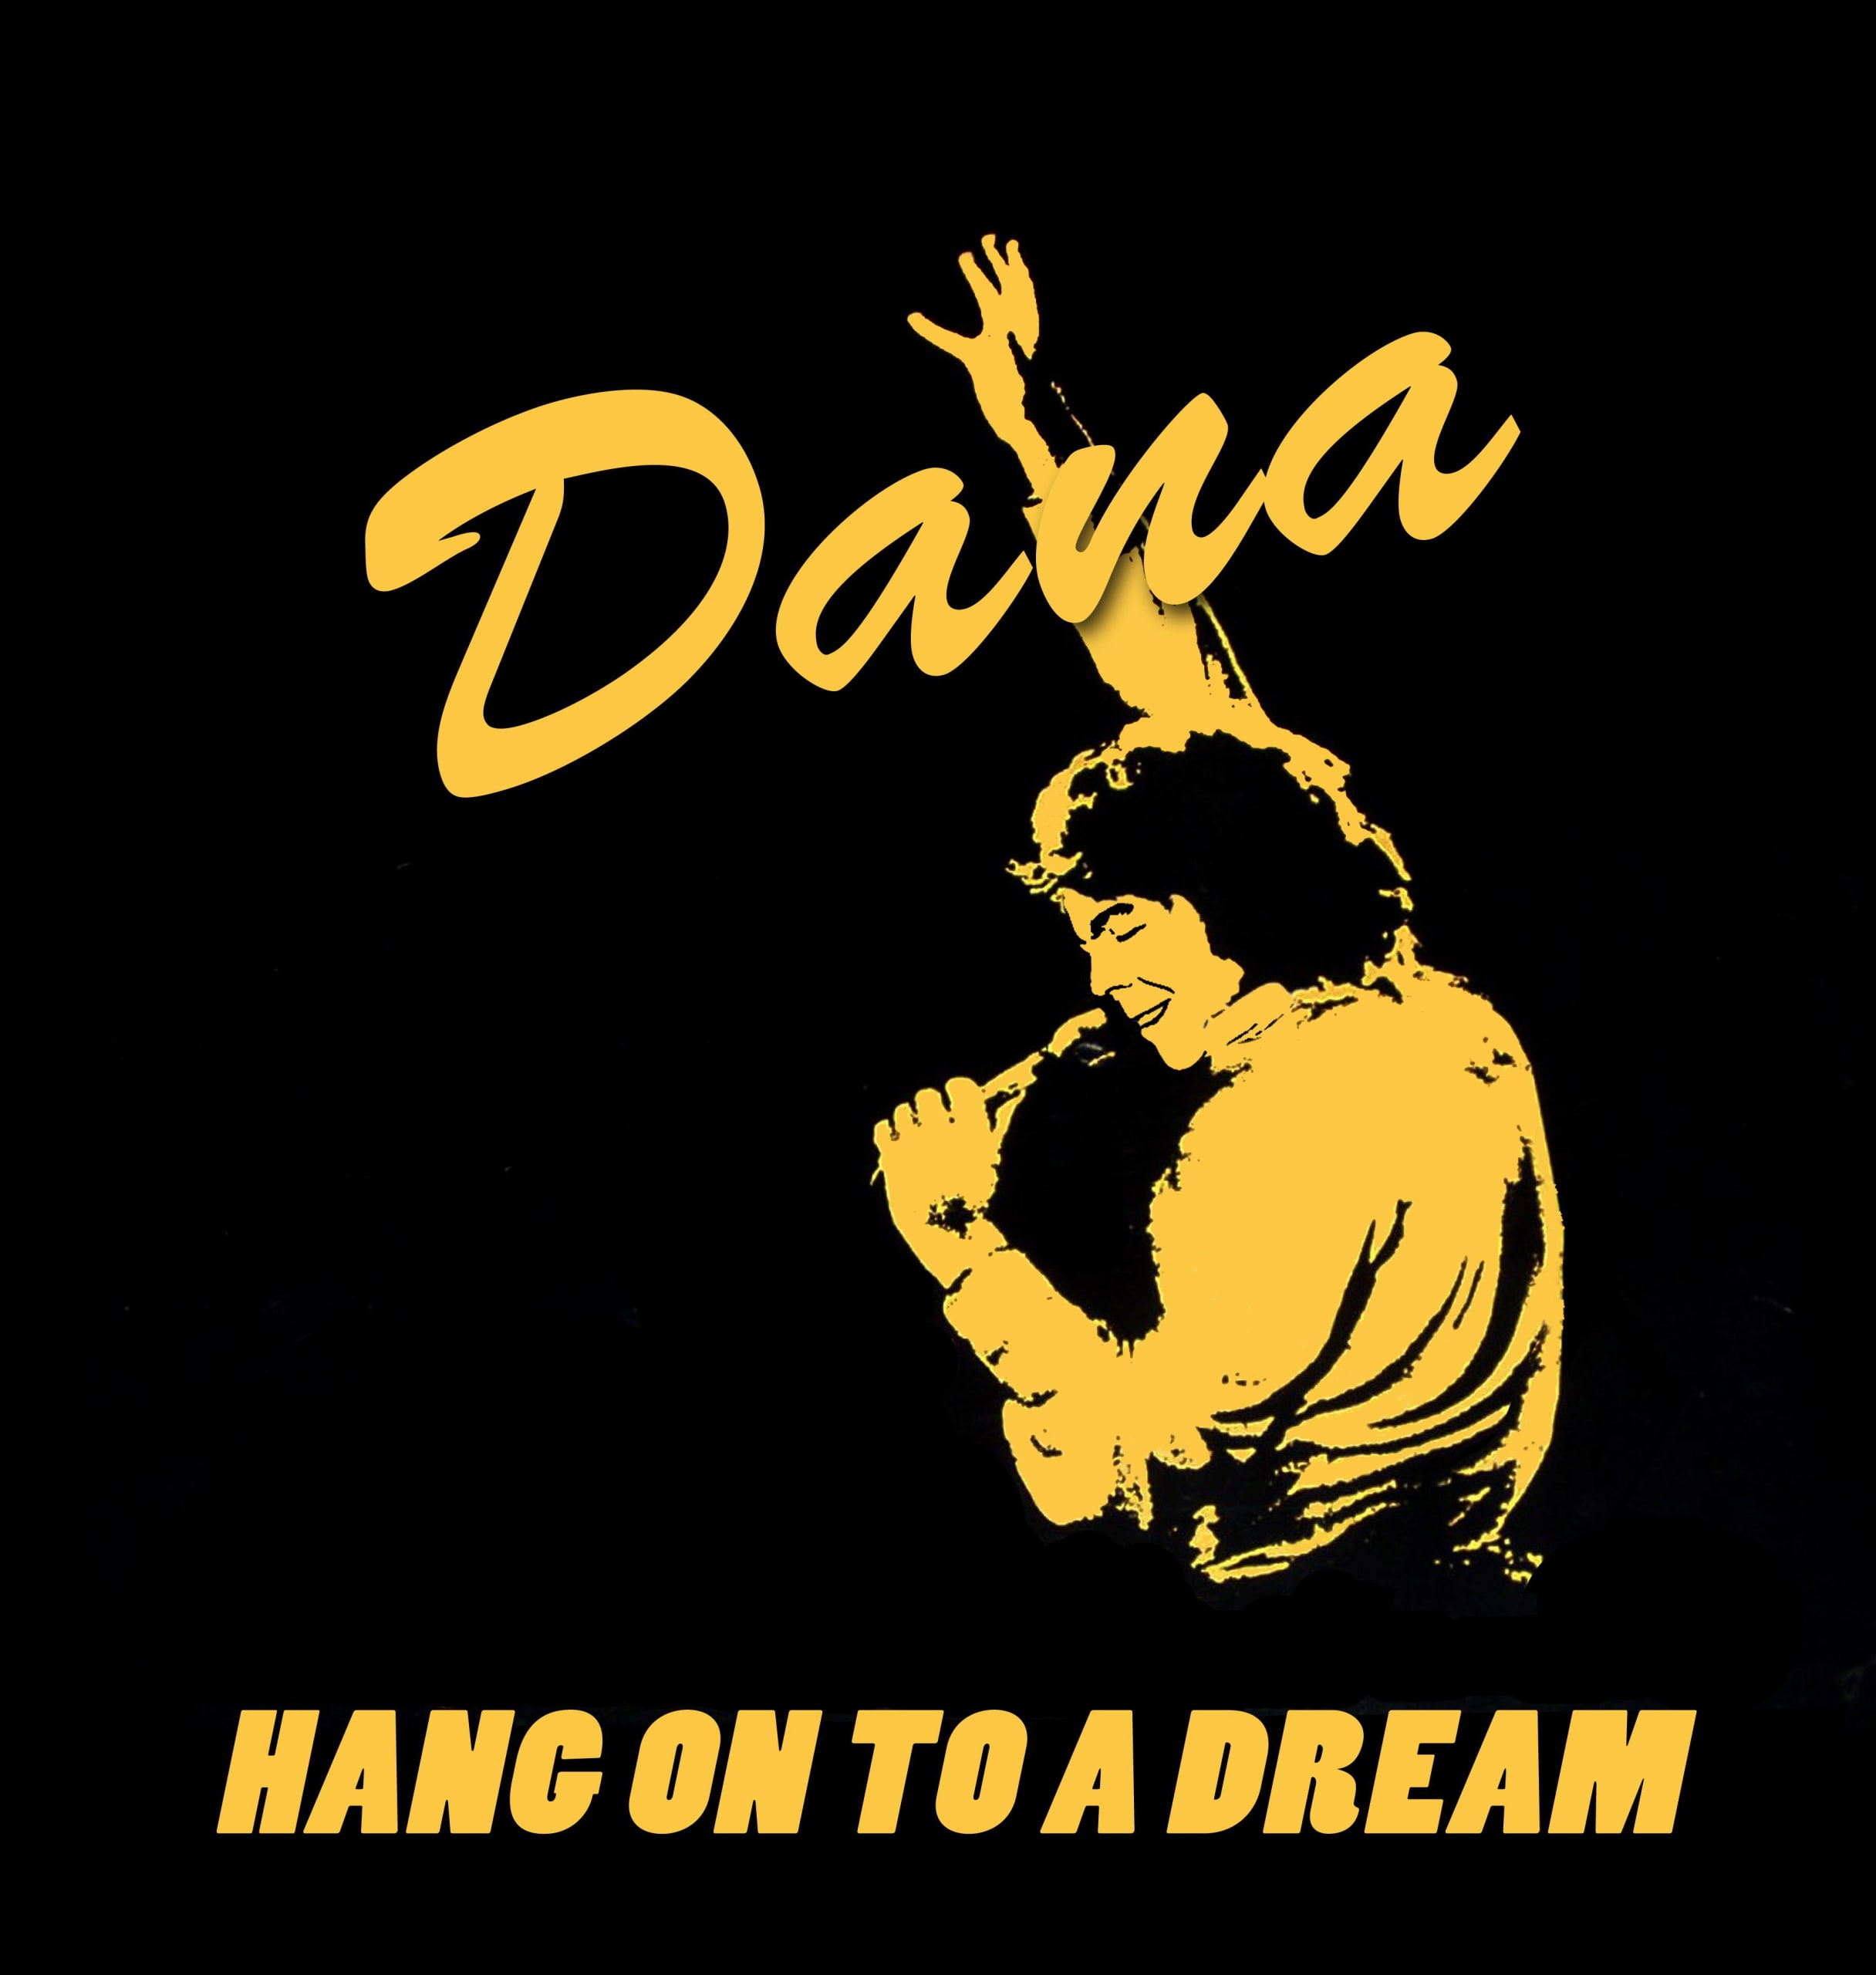 Dana – Hang On To A Dream